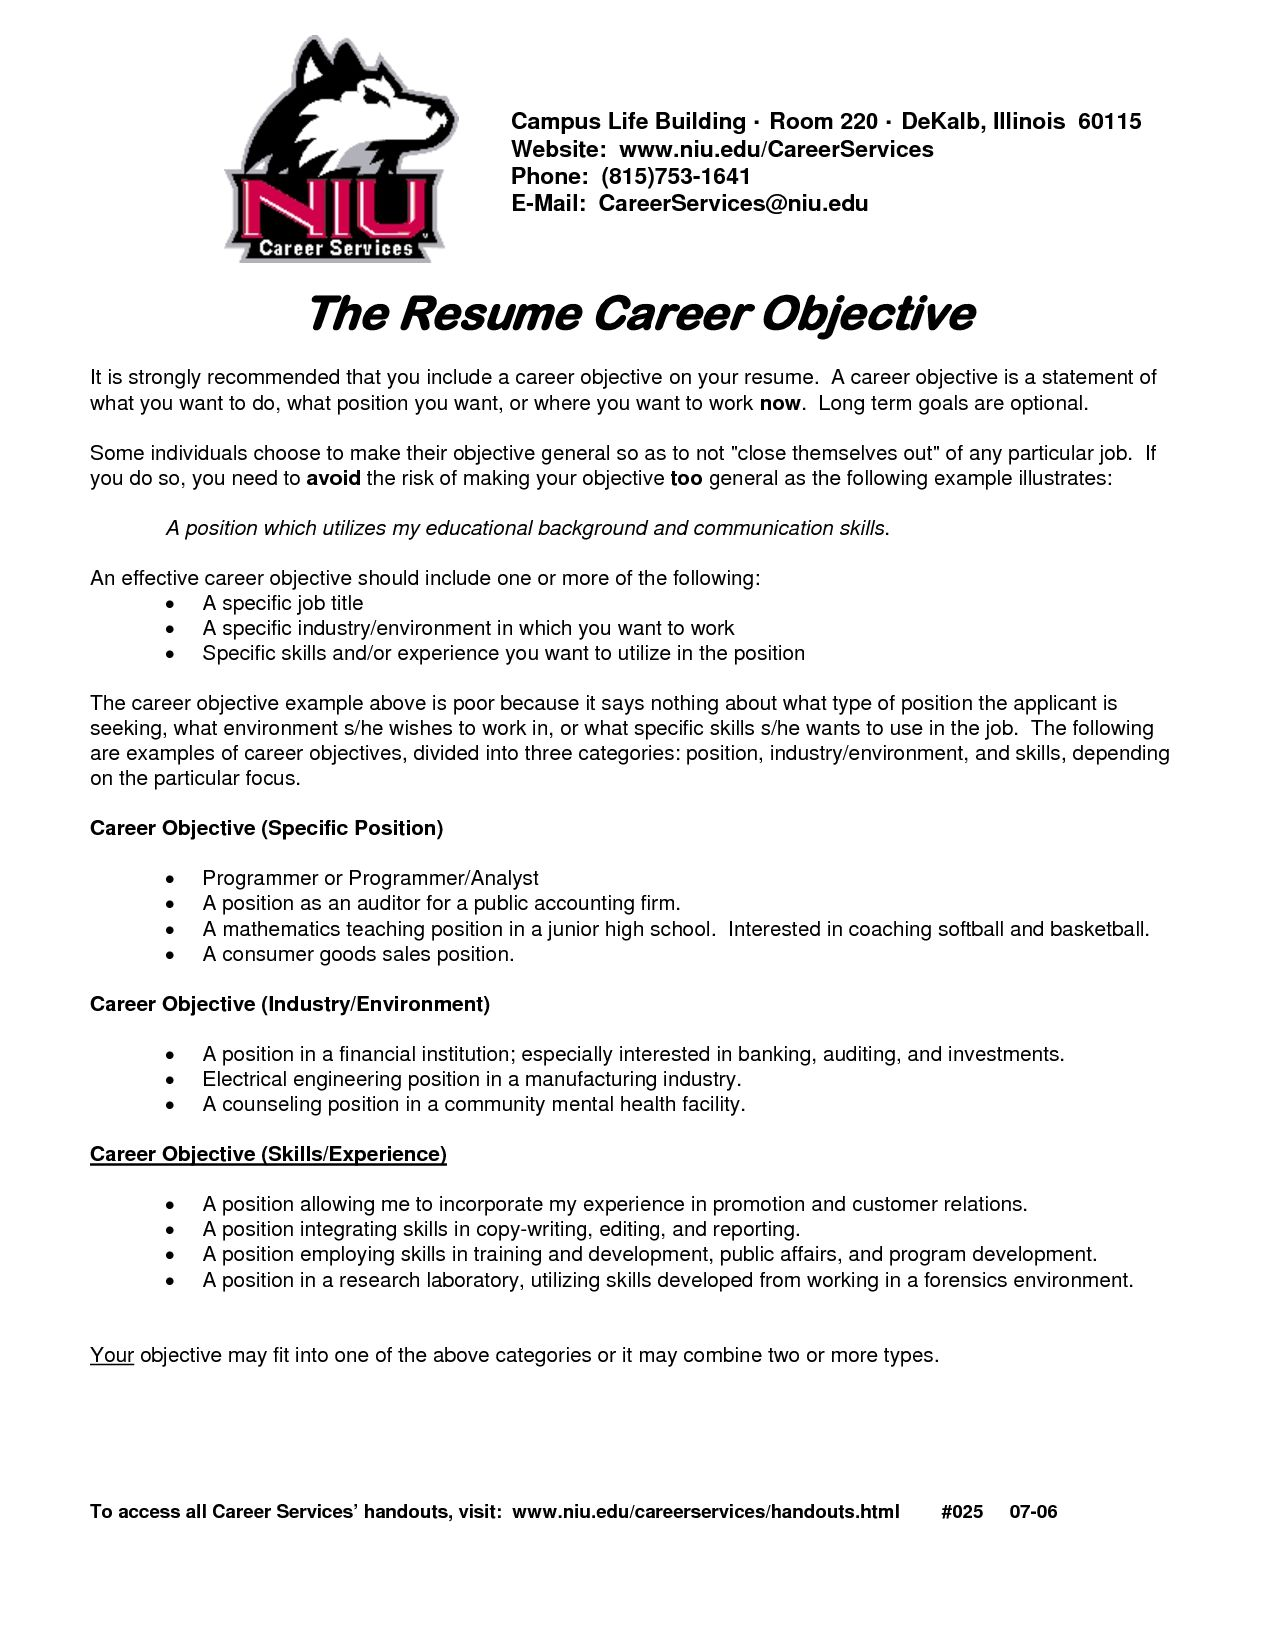 Nanny Resume Objective Sample Free Examples Pictures Help Extended School Day For Homework